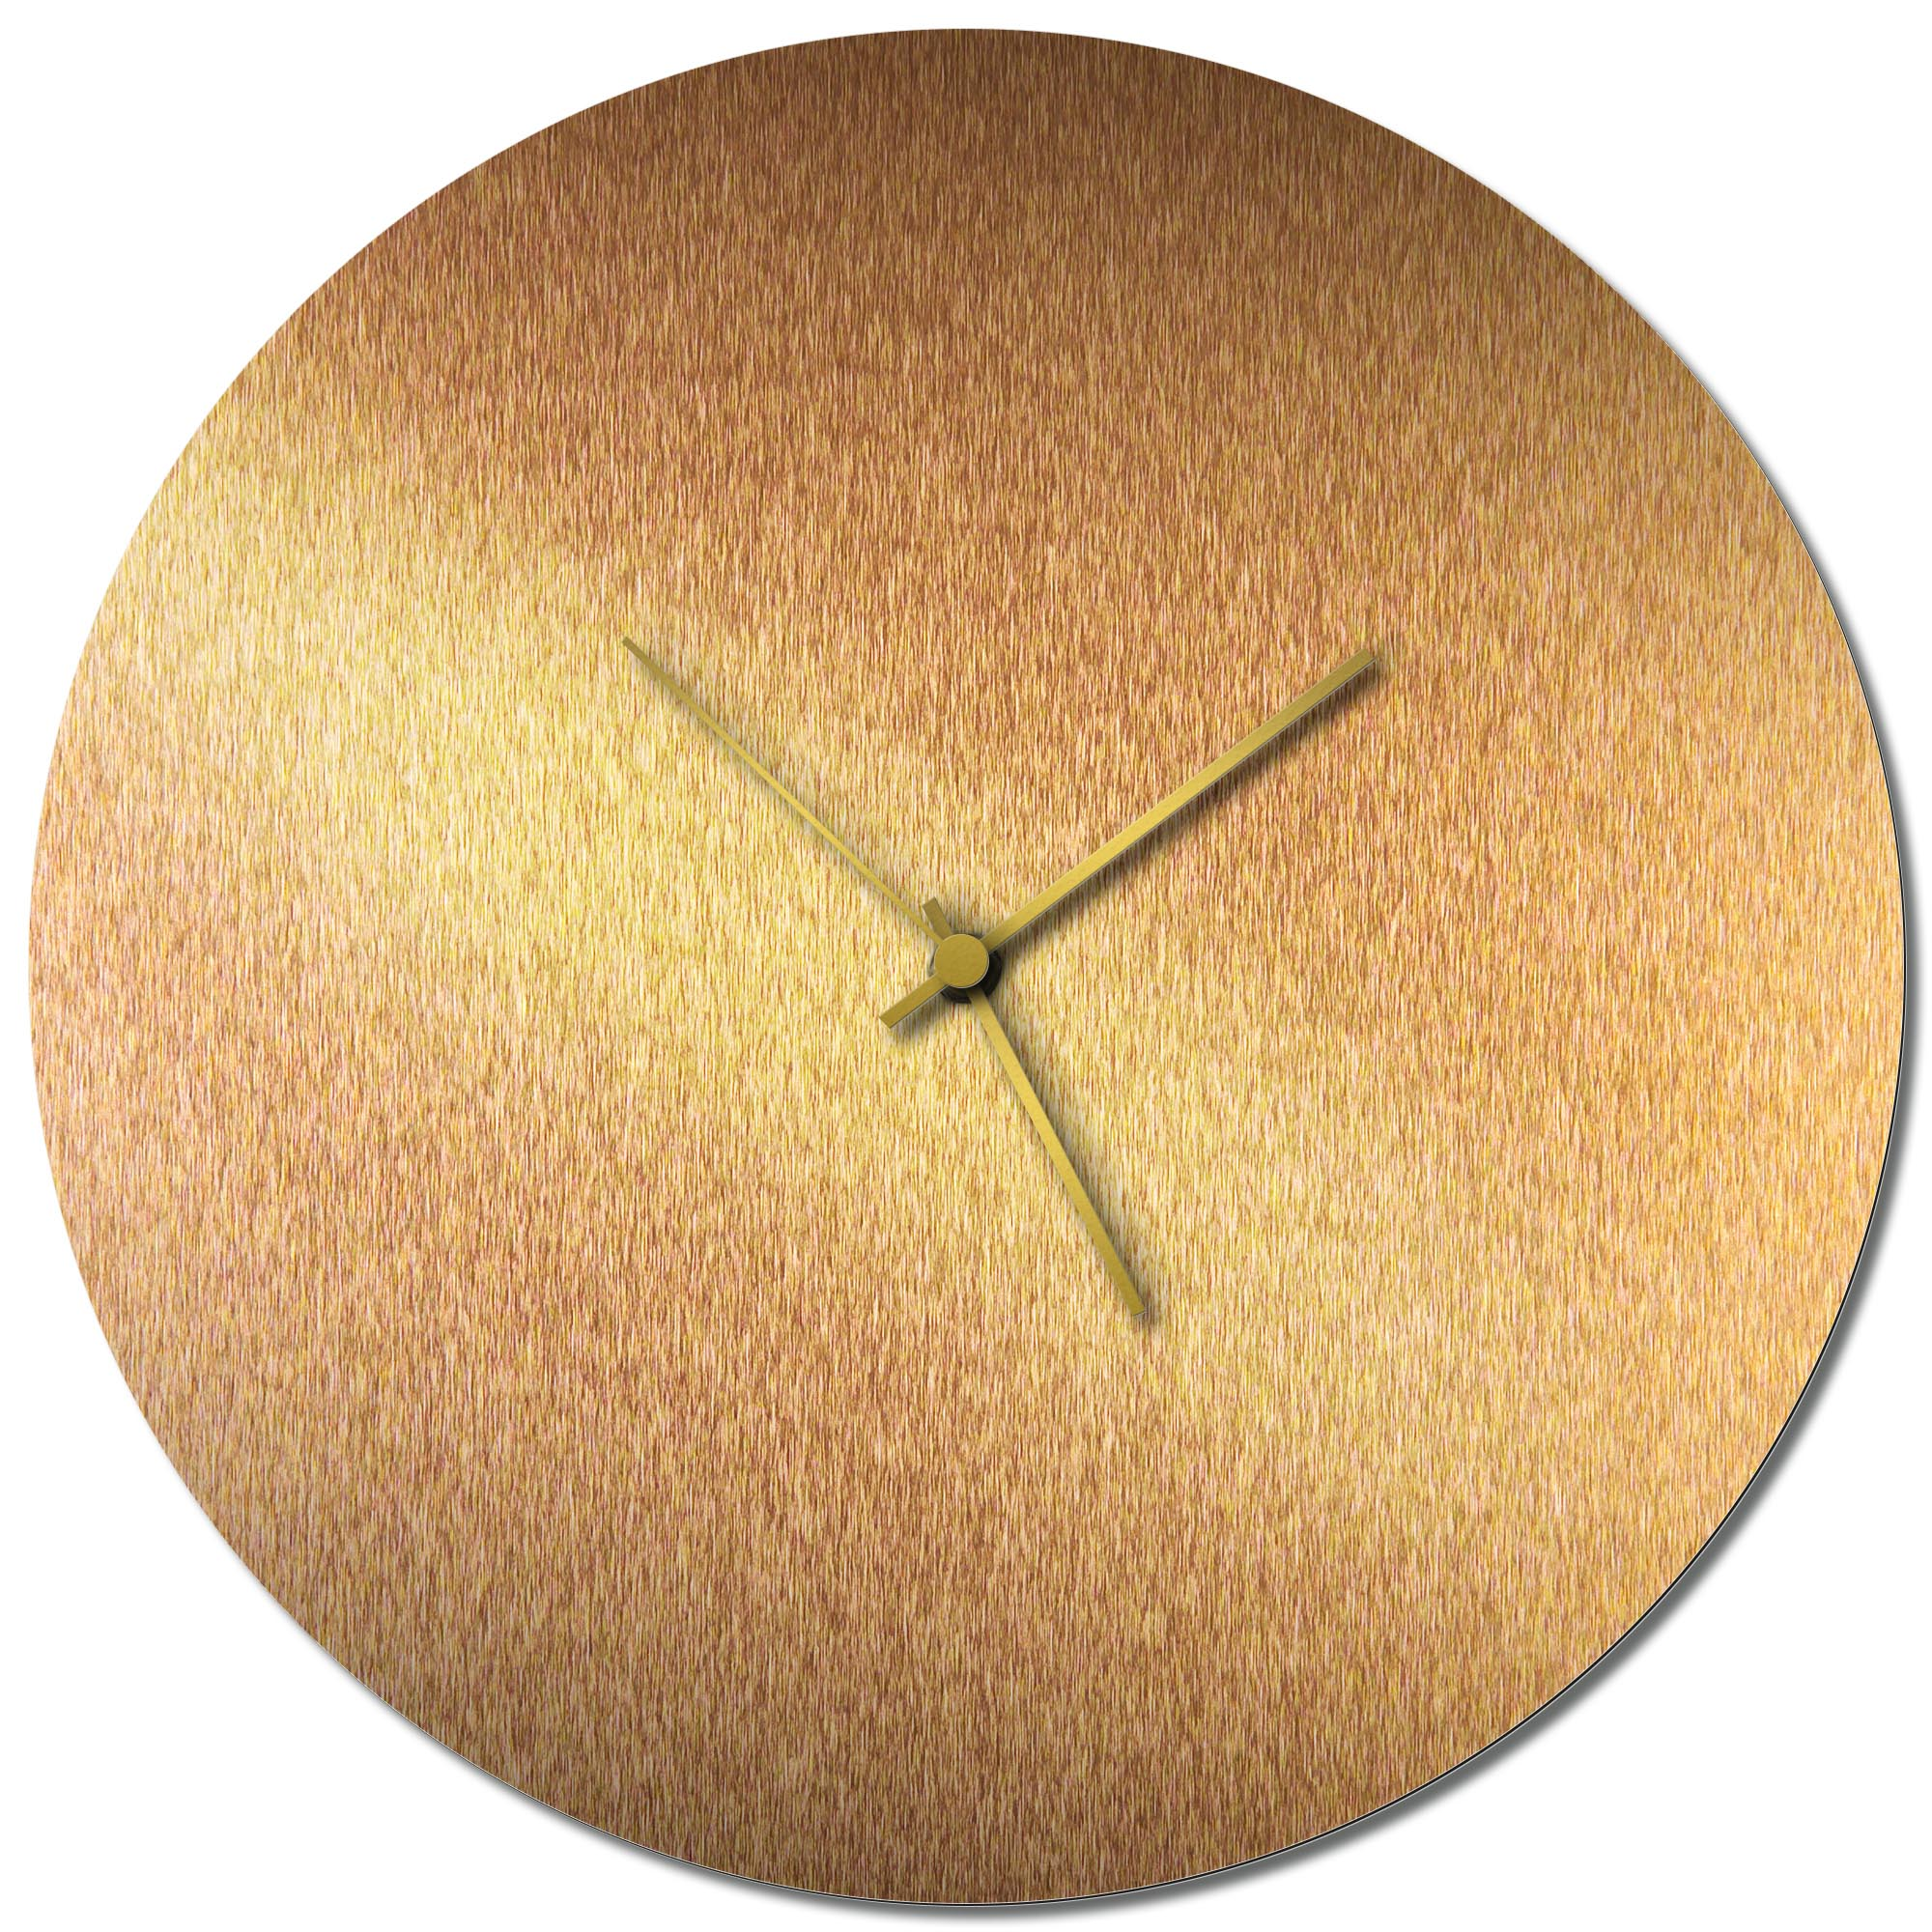 Adam Schwoeppe 'Bronzesmith Circle Clock Large Gold' Midcentury Modern Style Wall Clock